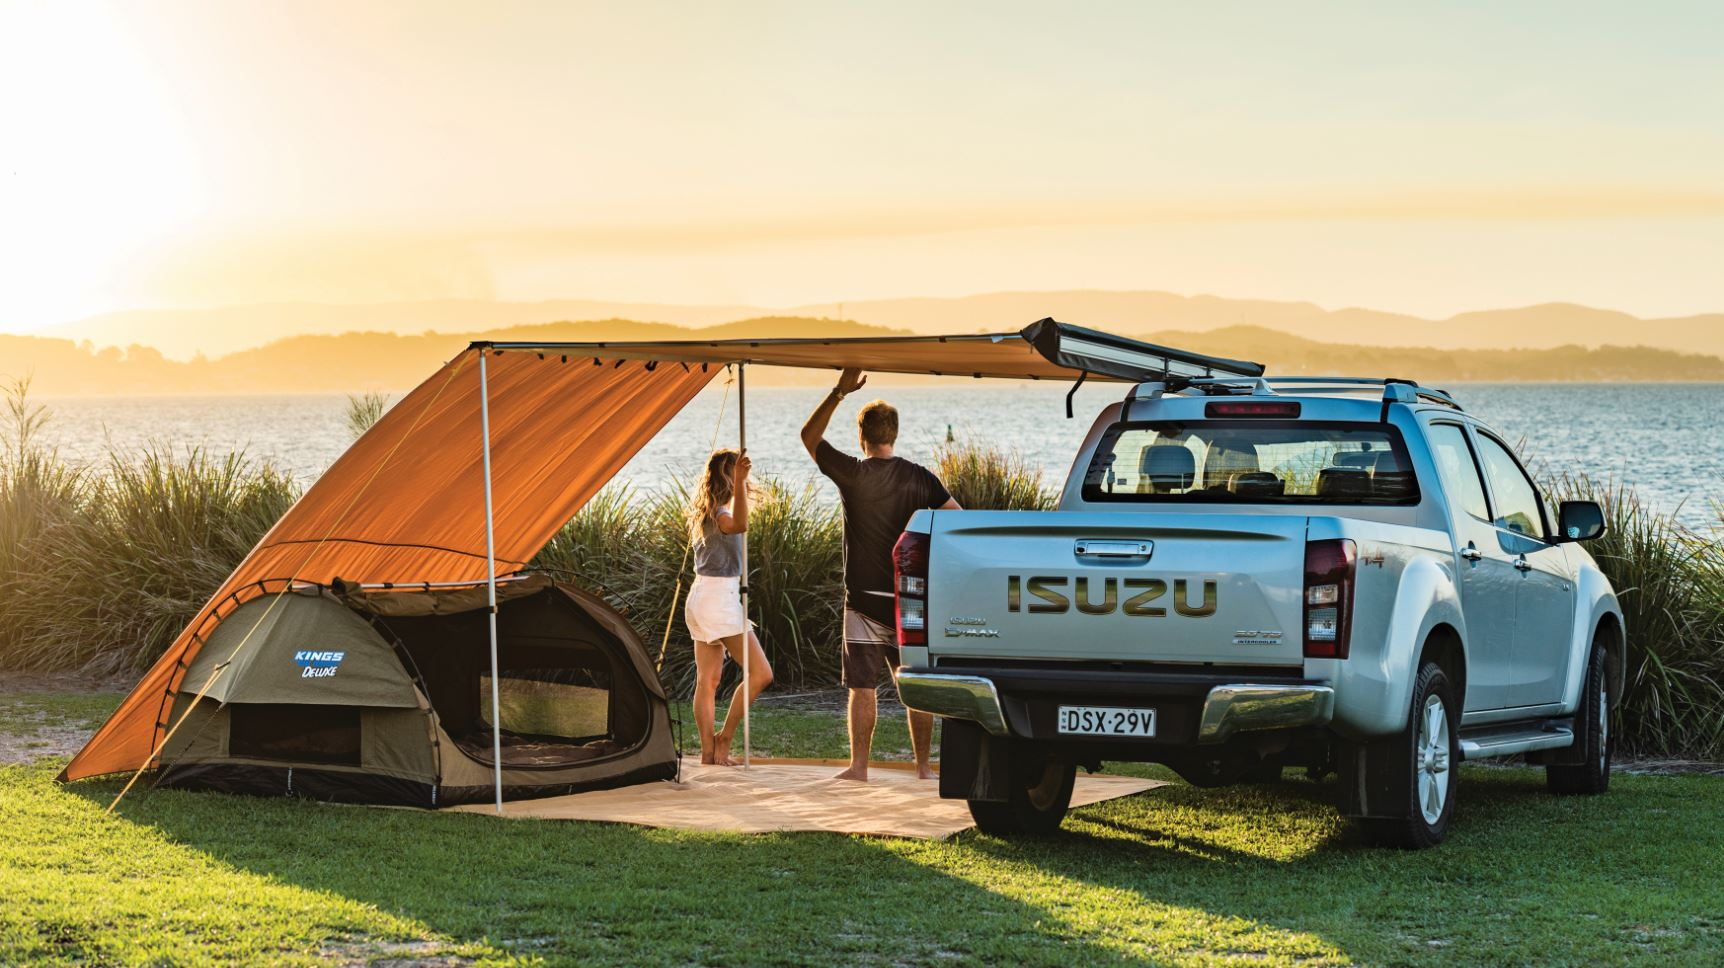 A Roof Top Tents have changed the way Aussies camp! - image 180403-BelmontSetups-NZ on https://www.4wdsupacentre.com.au/news